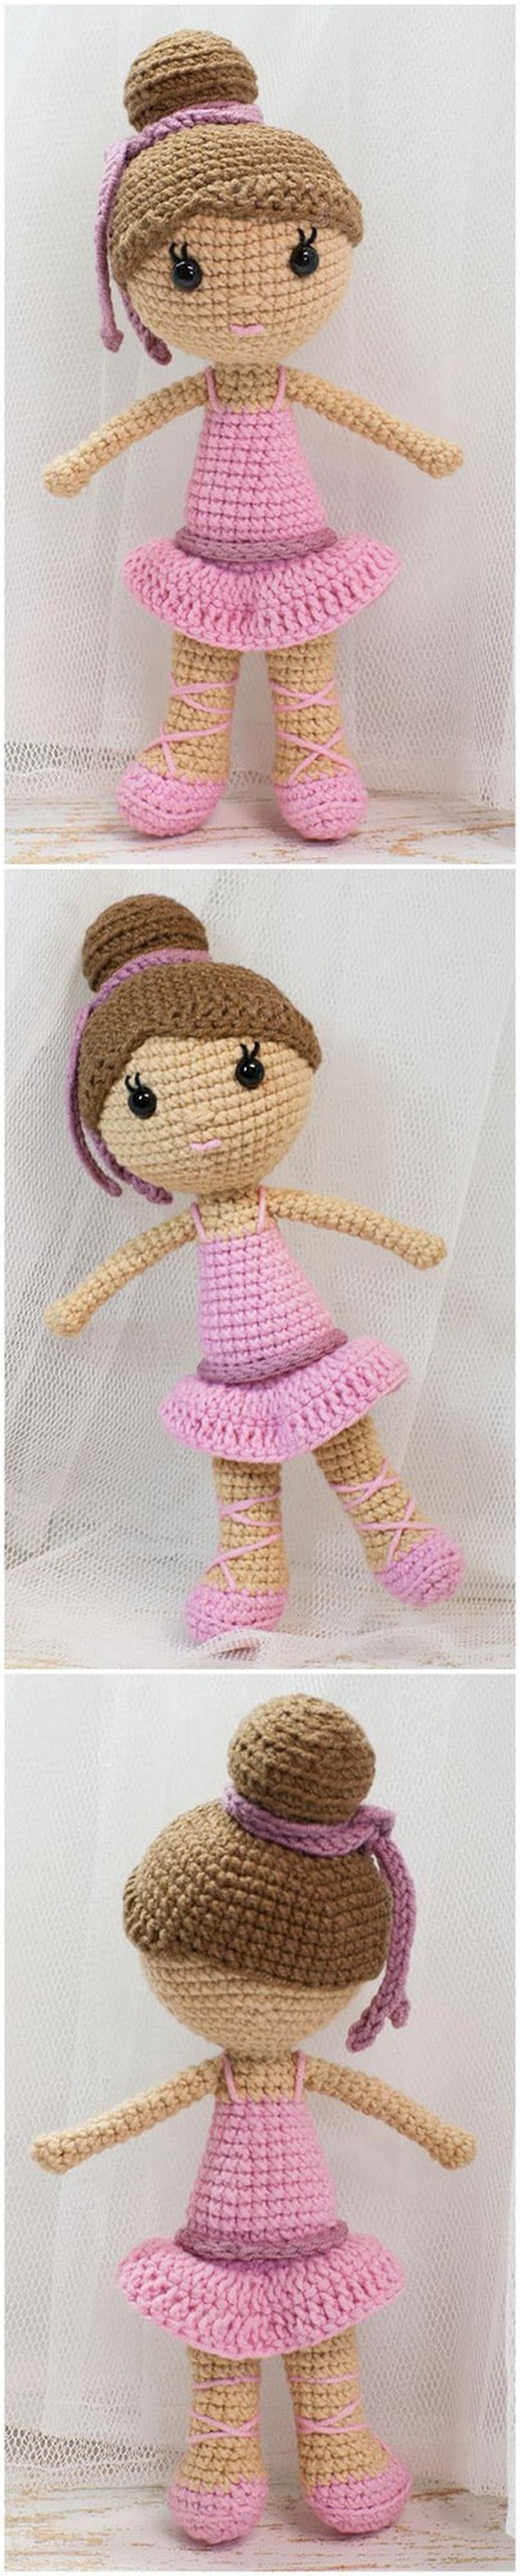 Crochet Amigurumi Doll Pattern (37)